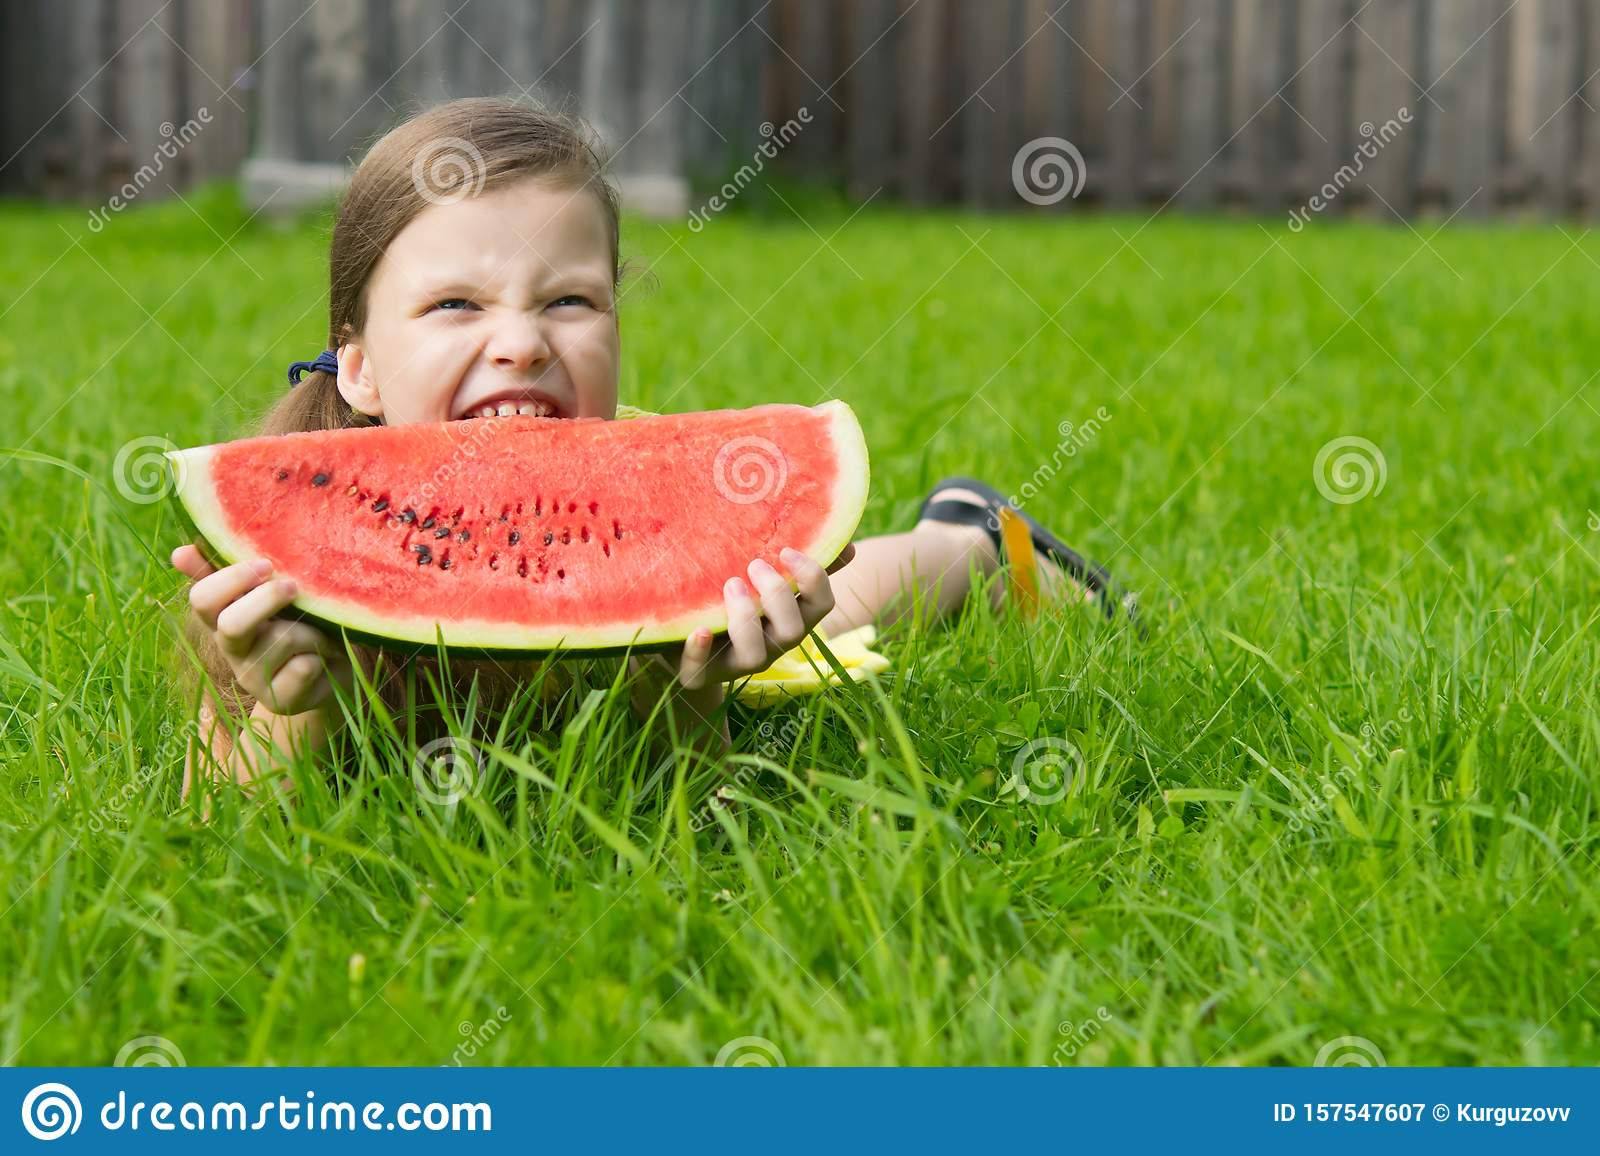 Girl lying on the lawn. and holding a large slice of watermelon on a green background